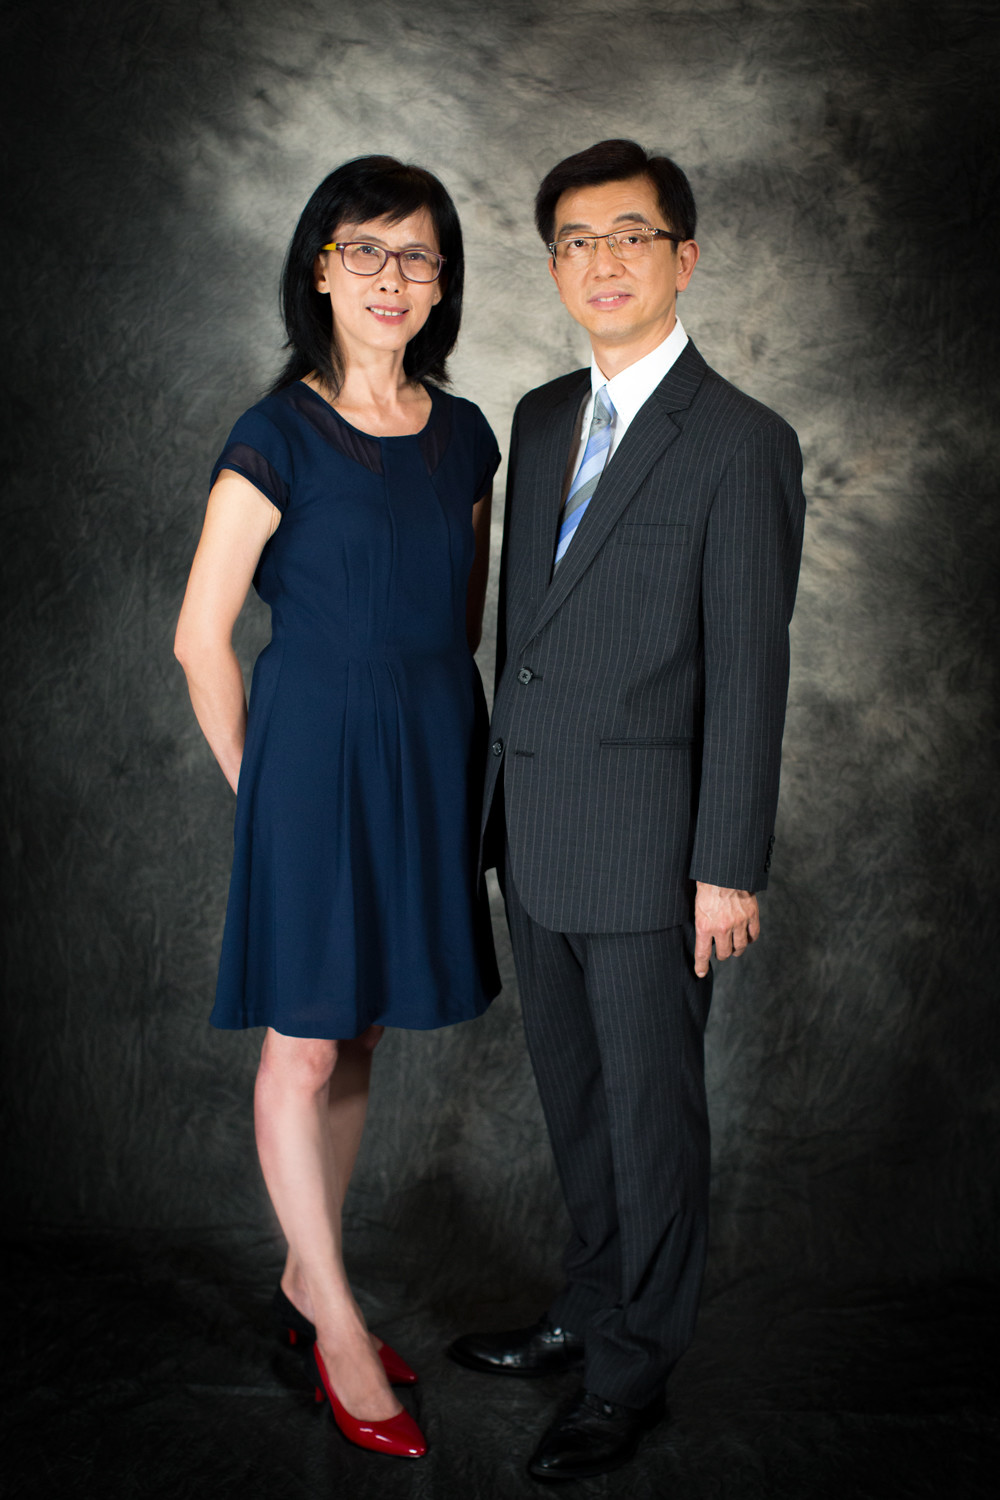 Corporate Portrait Photography